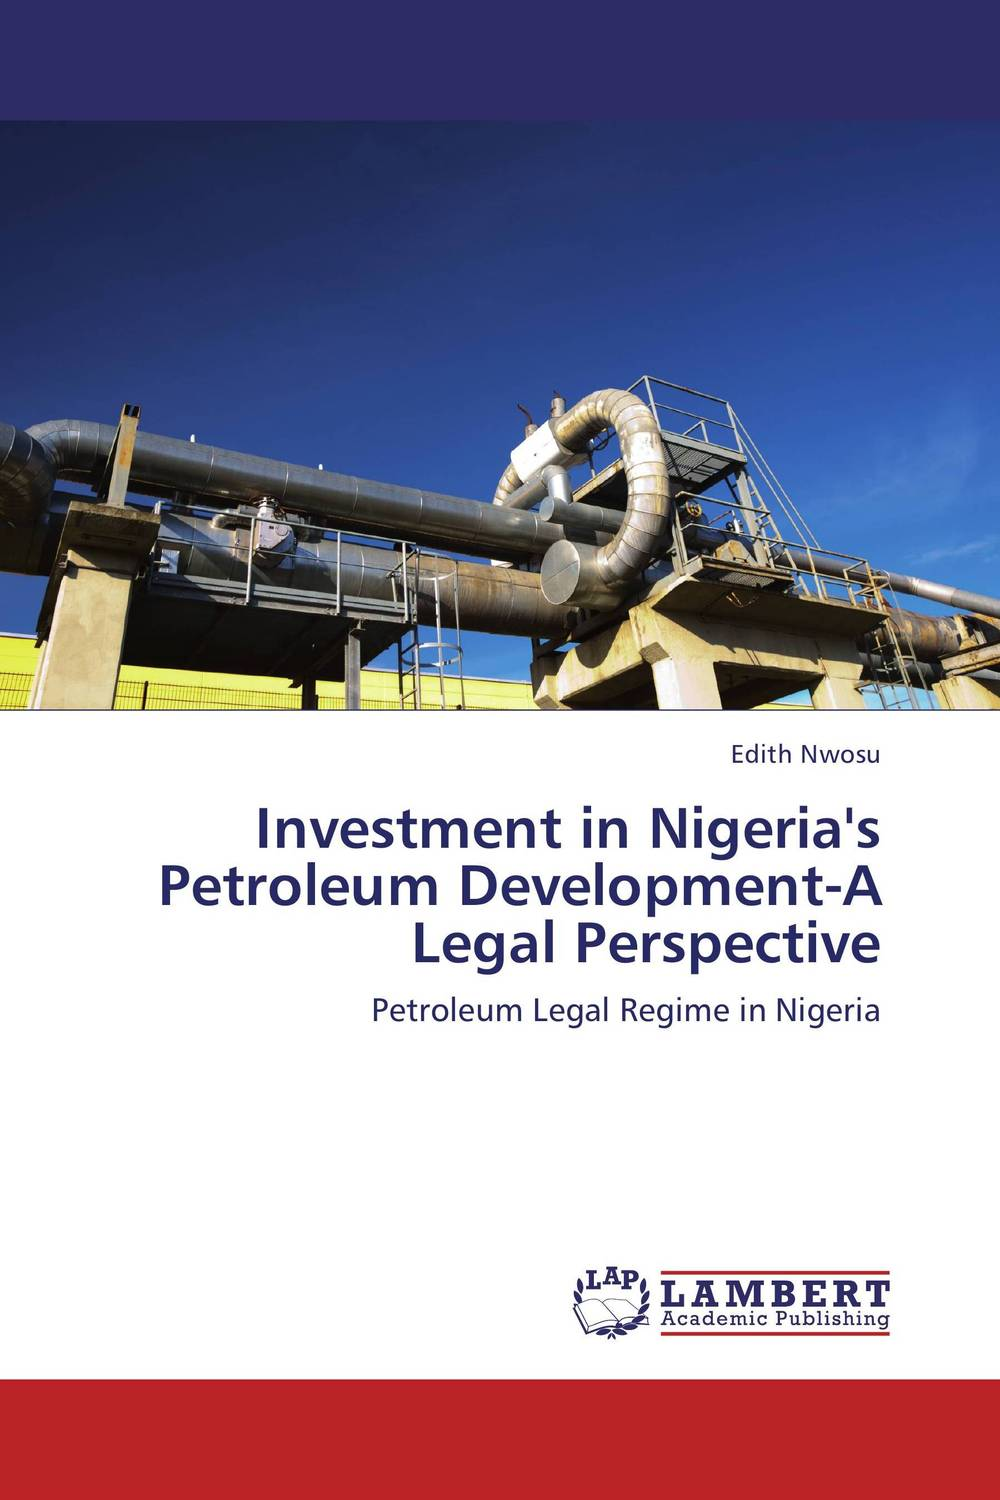 Investment in Nigeria's Petroleum Development-A Legal Perspective comparative assessment of petroleum sharing contracts in nigeria